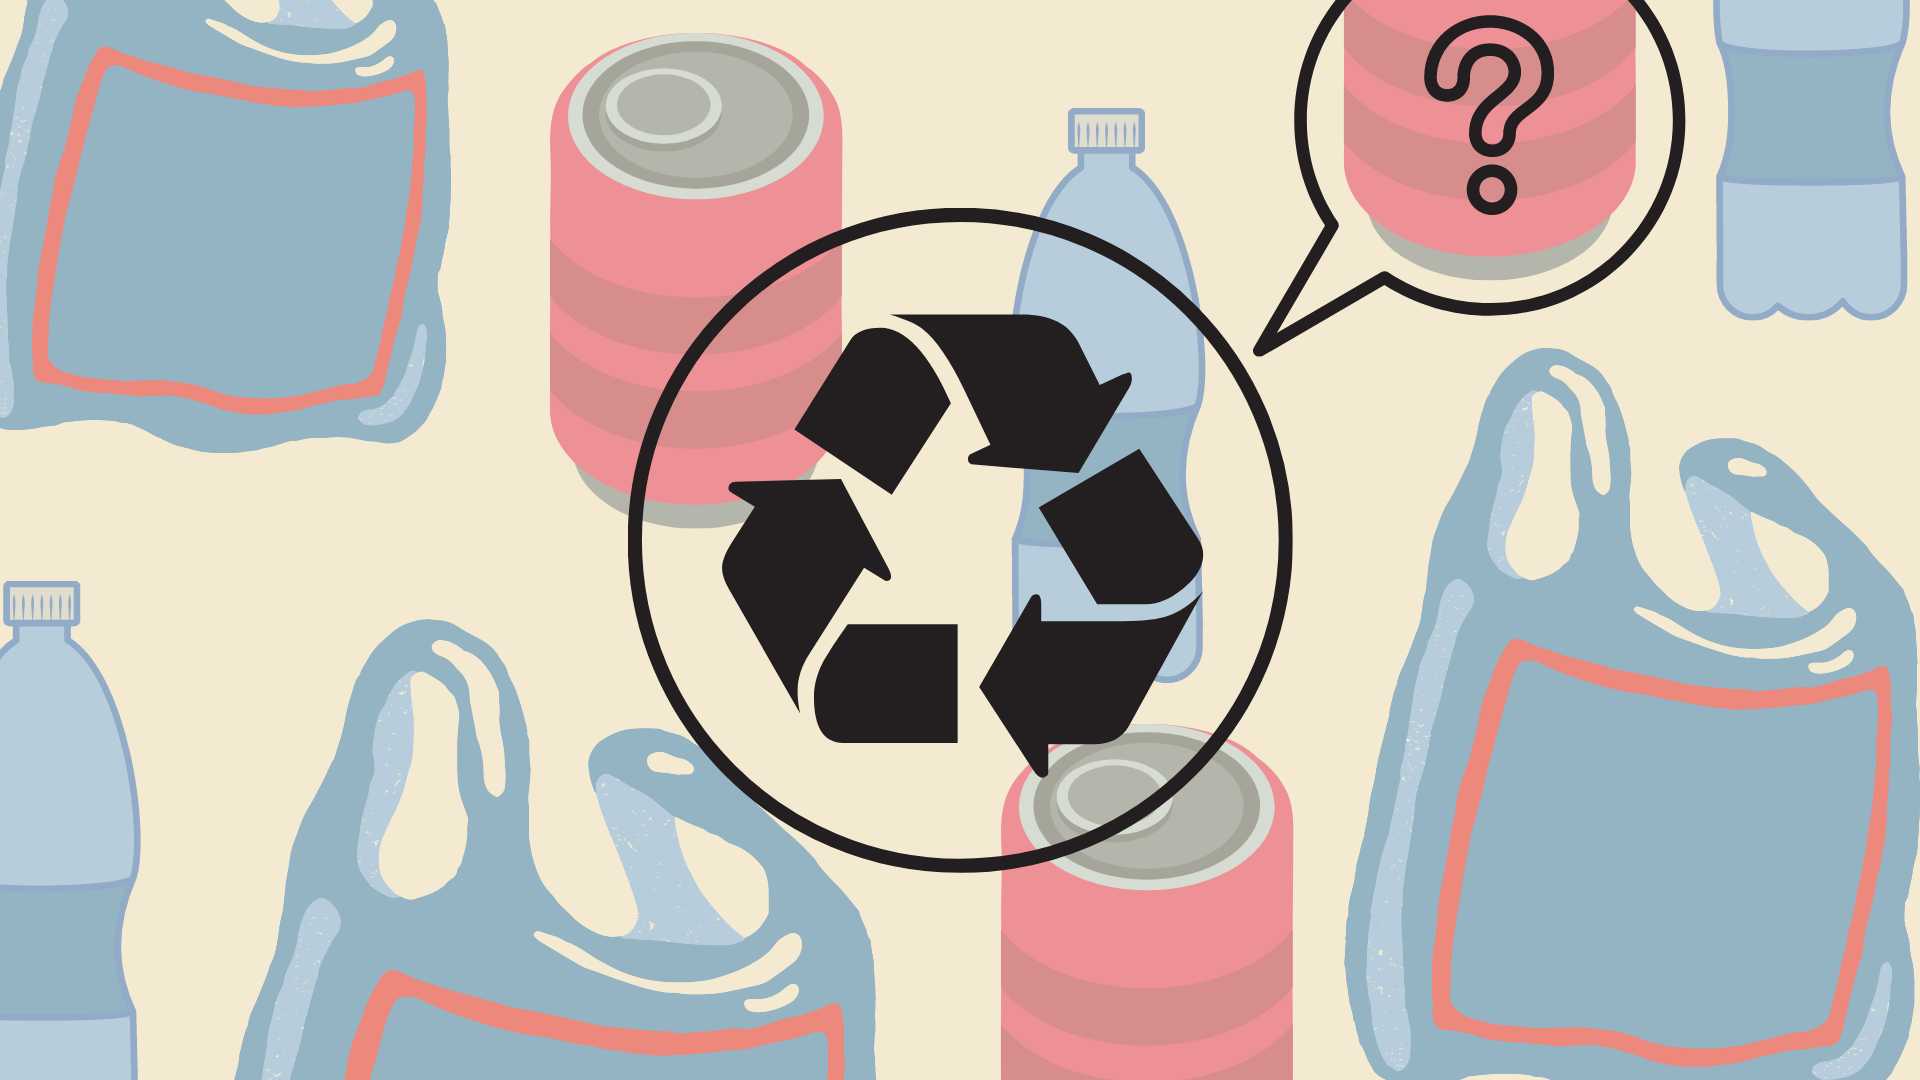 Pastel coloured graphic. Background of plastic bags and drinks cans foregrounded by recycling symbol.